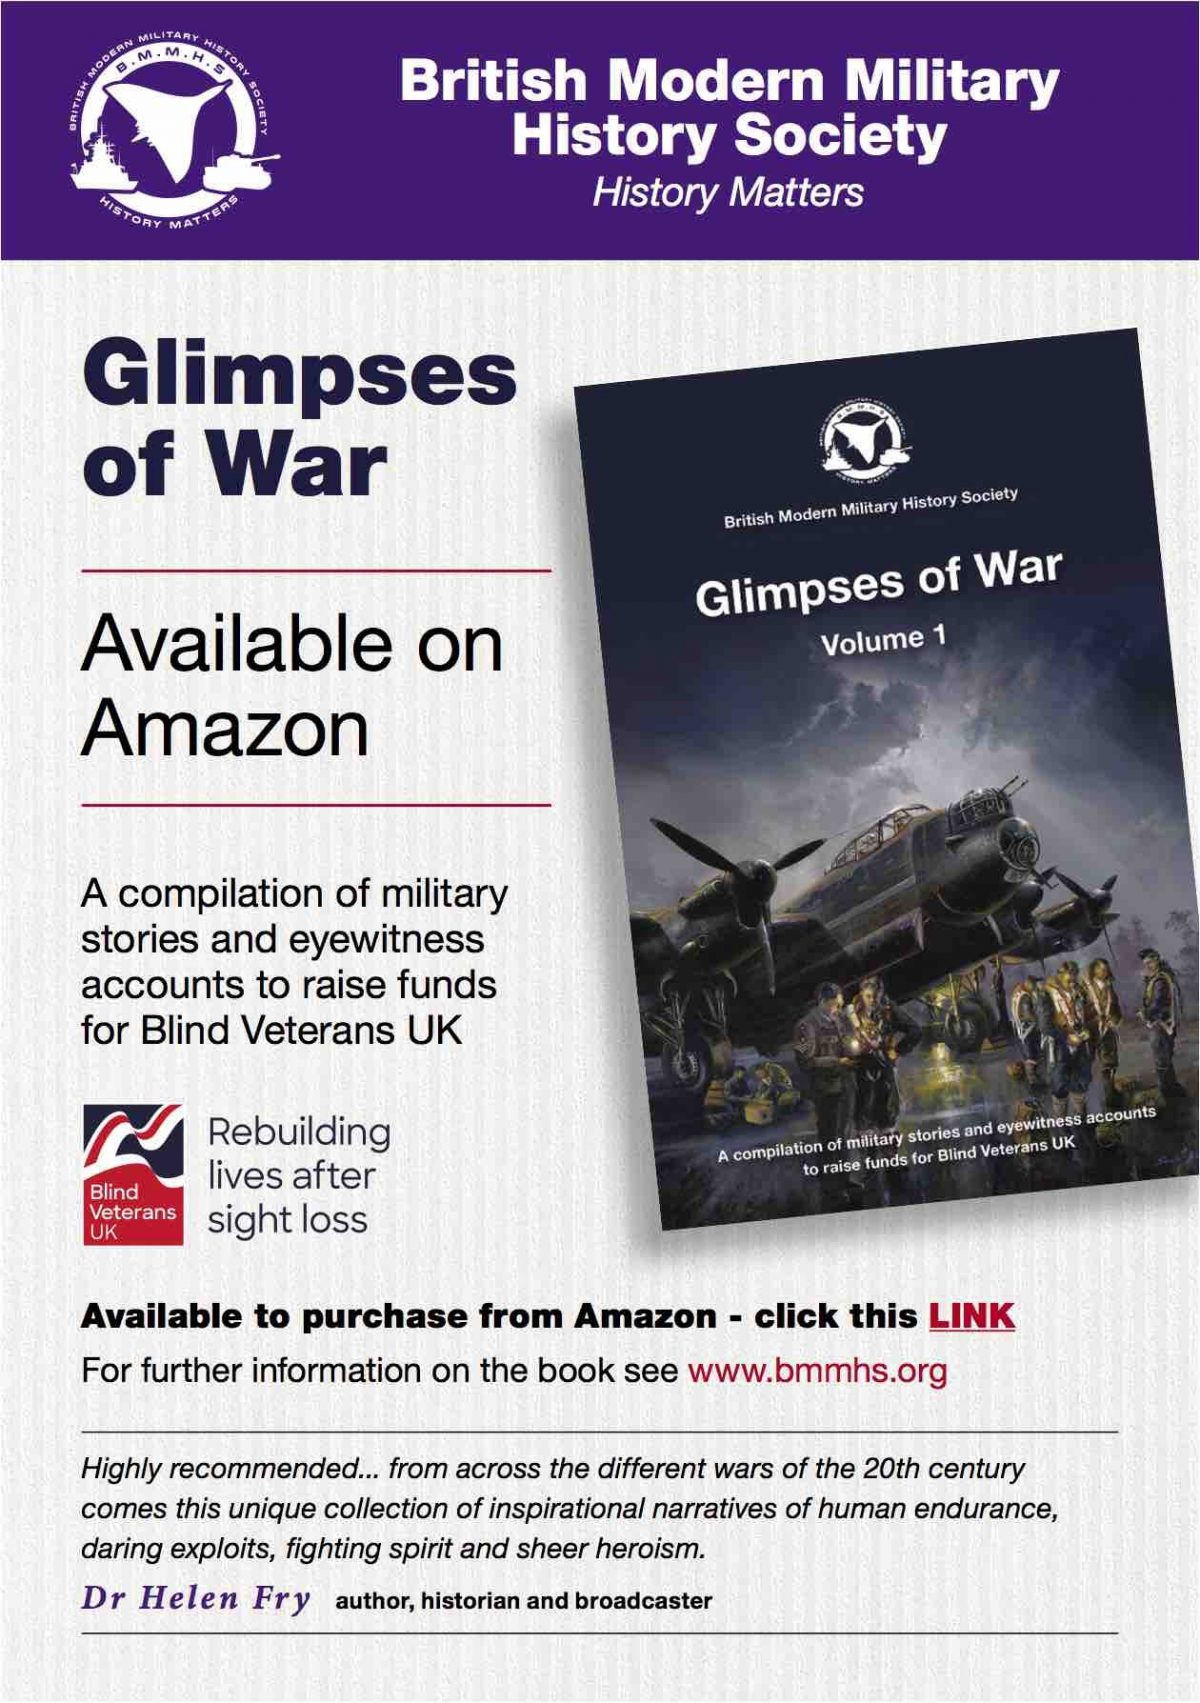 Glimpses of War –Kindle version now available onAmazon